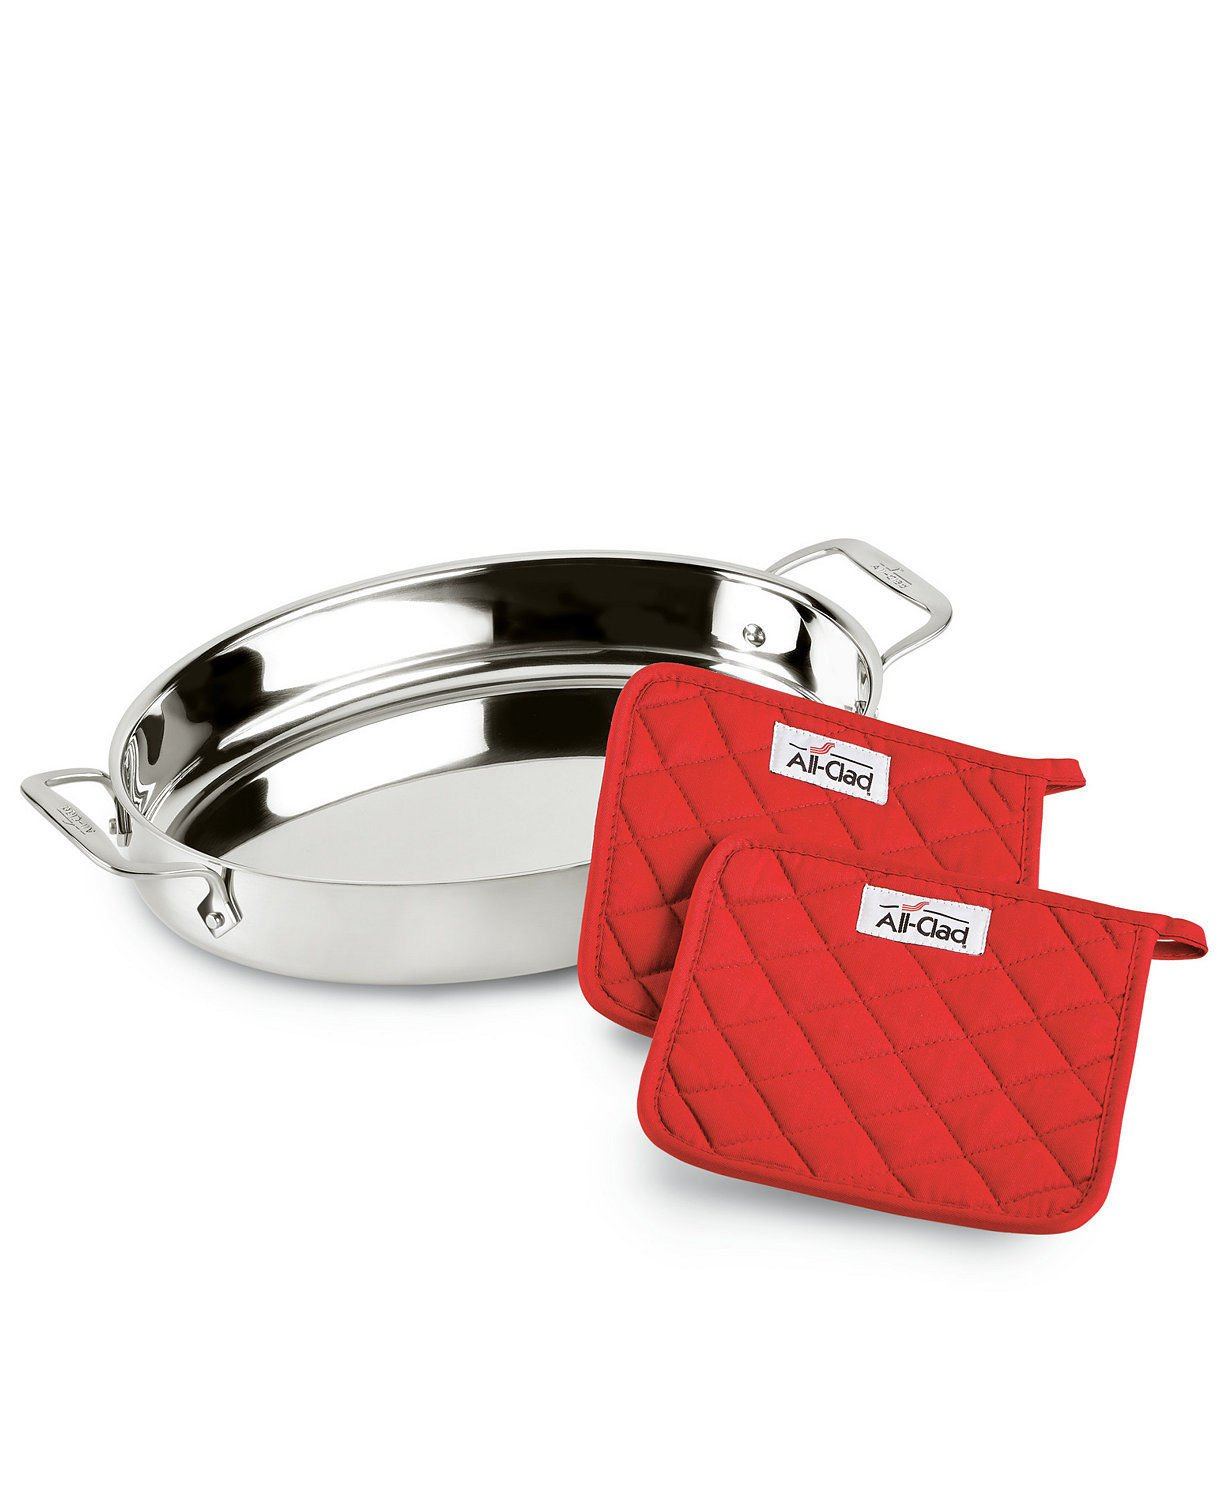 "All-Clad Stainless Steel 15"" Oval Baker with Pot Holders"